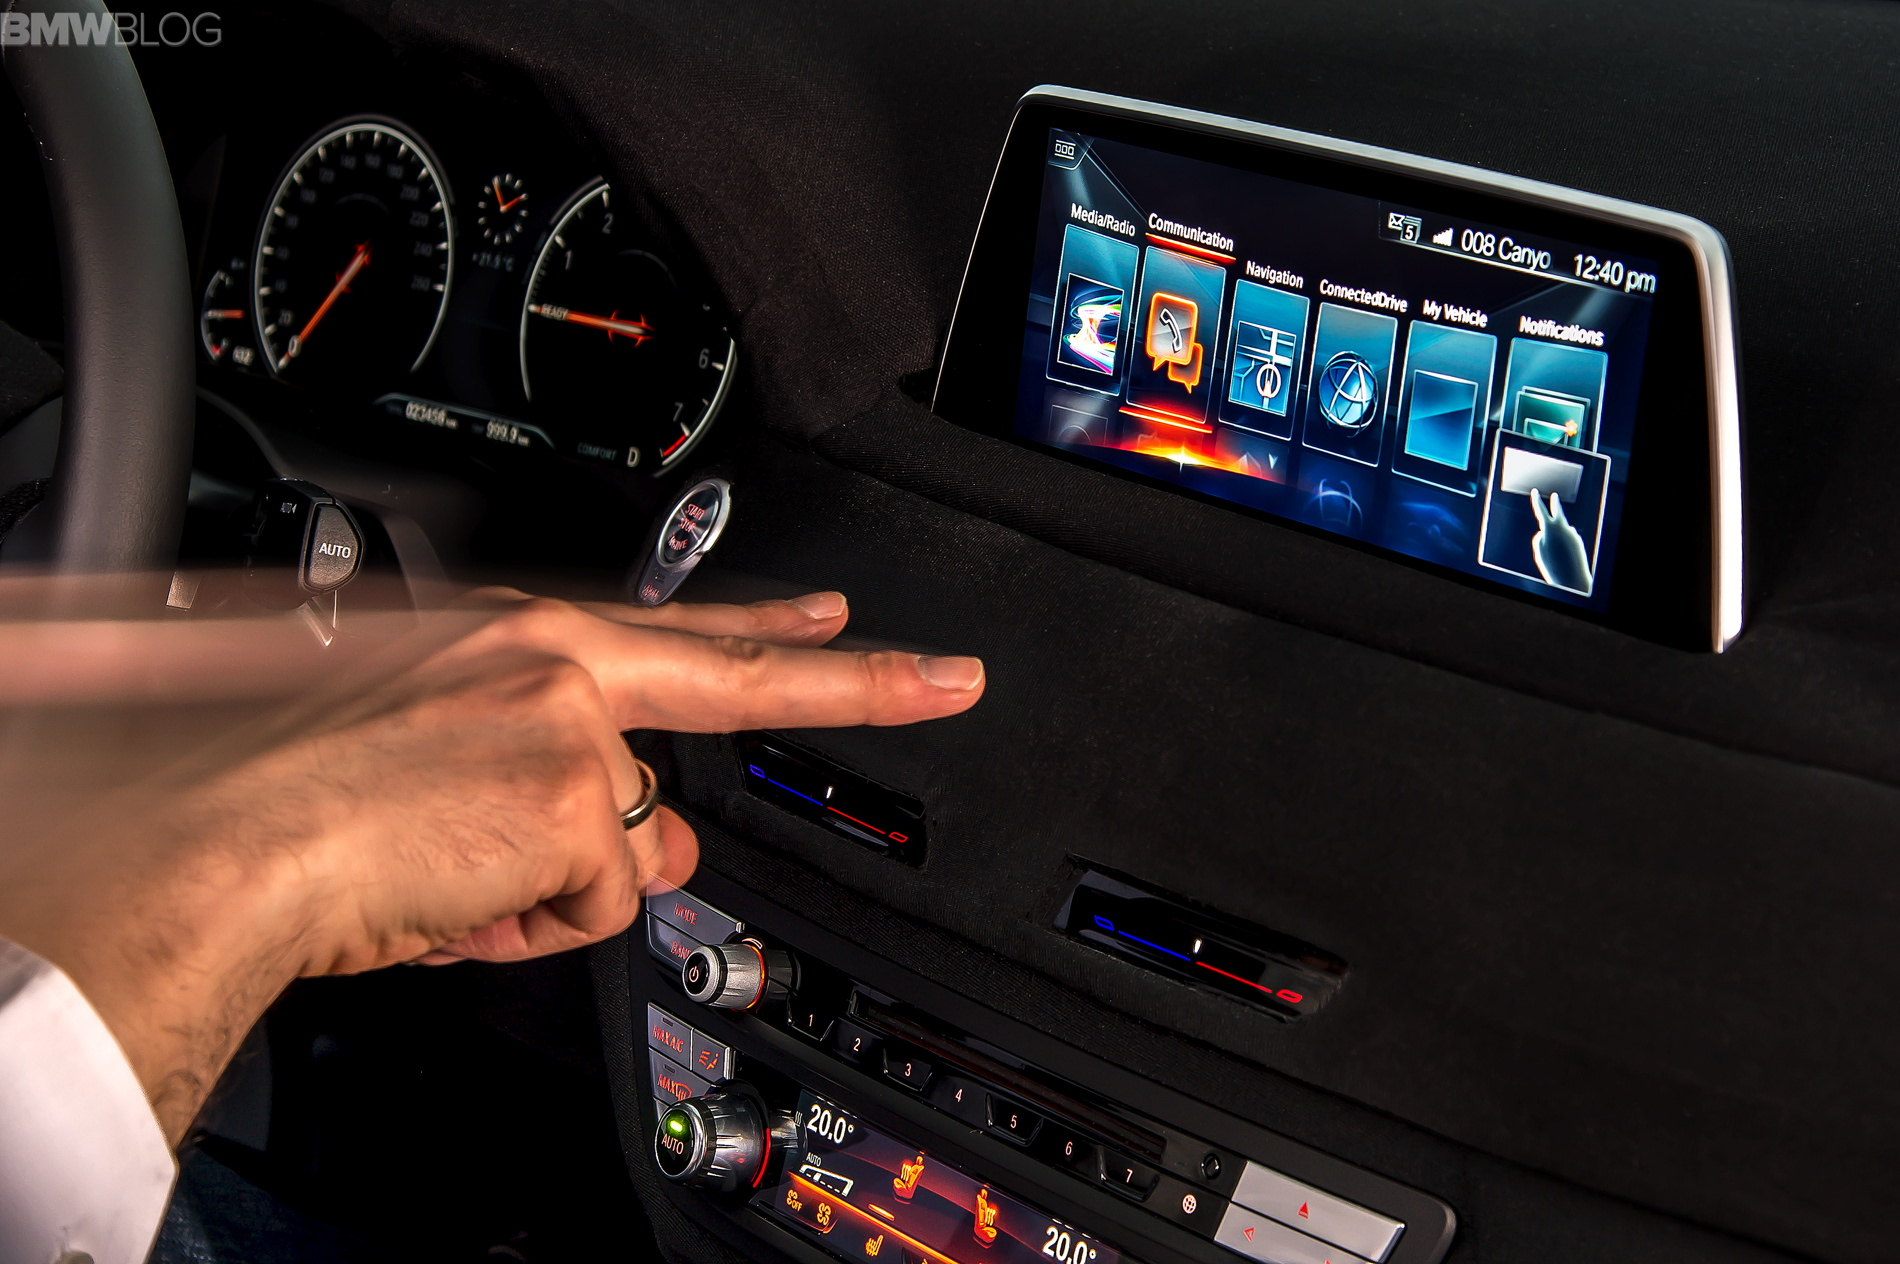 2016 bmw 7 series hand gestures images 04